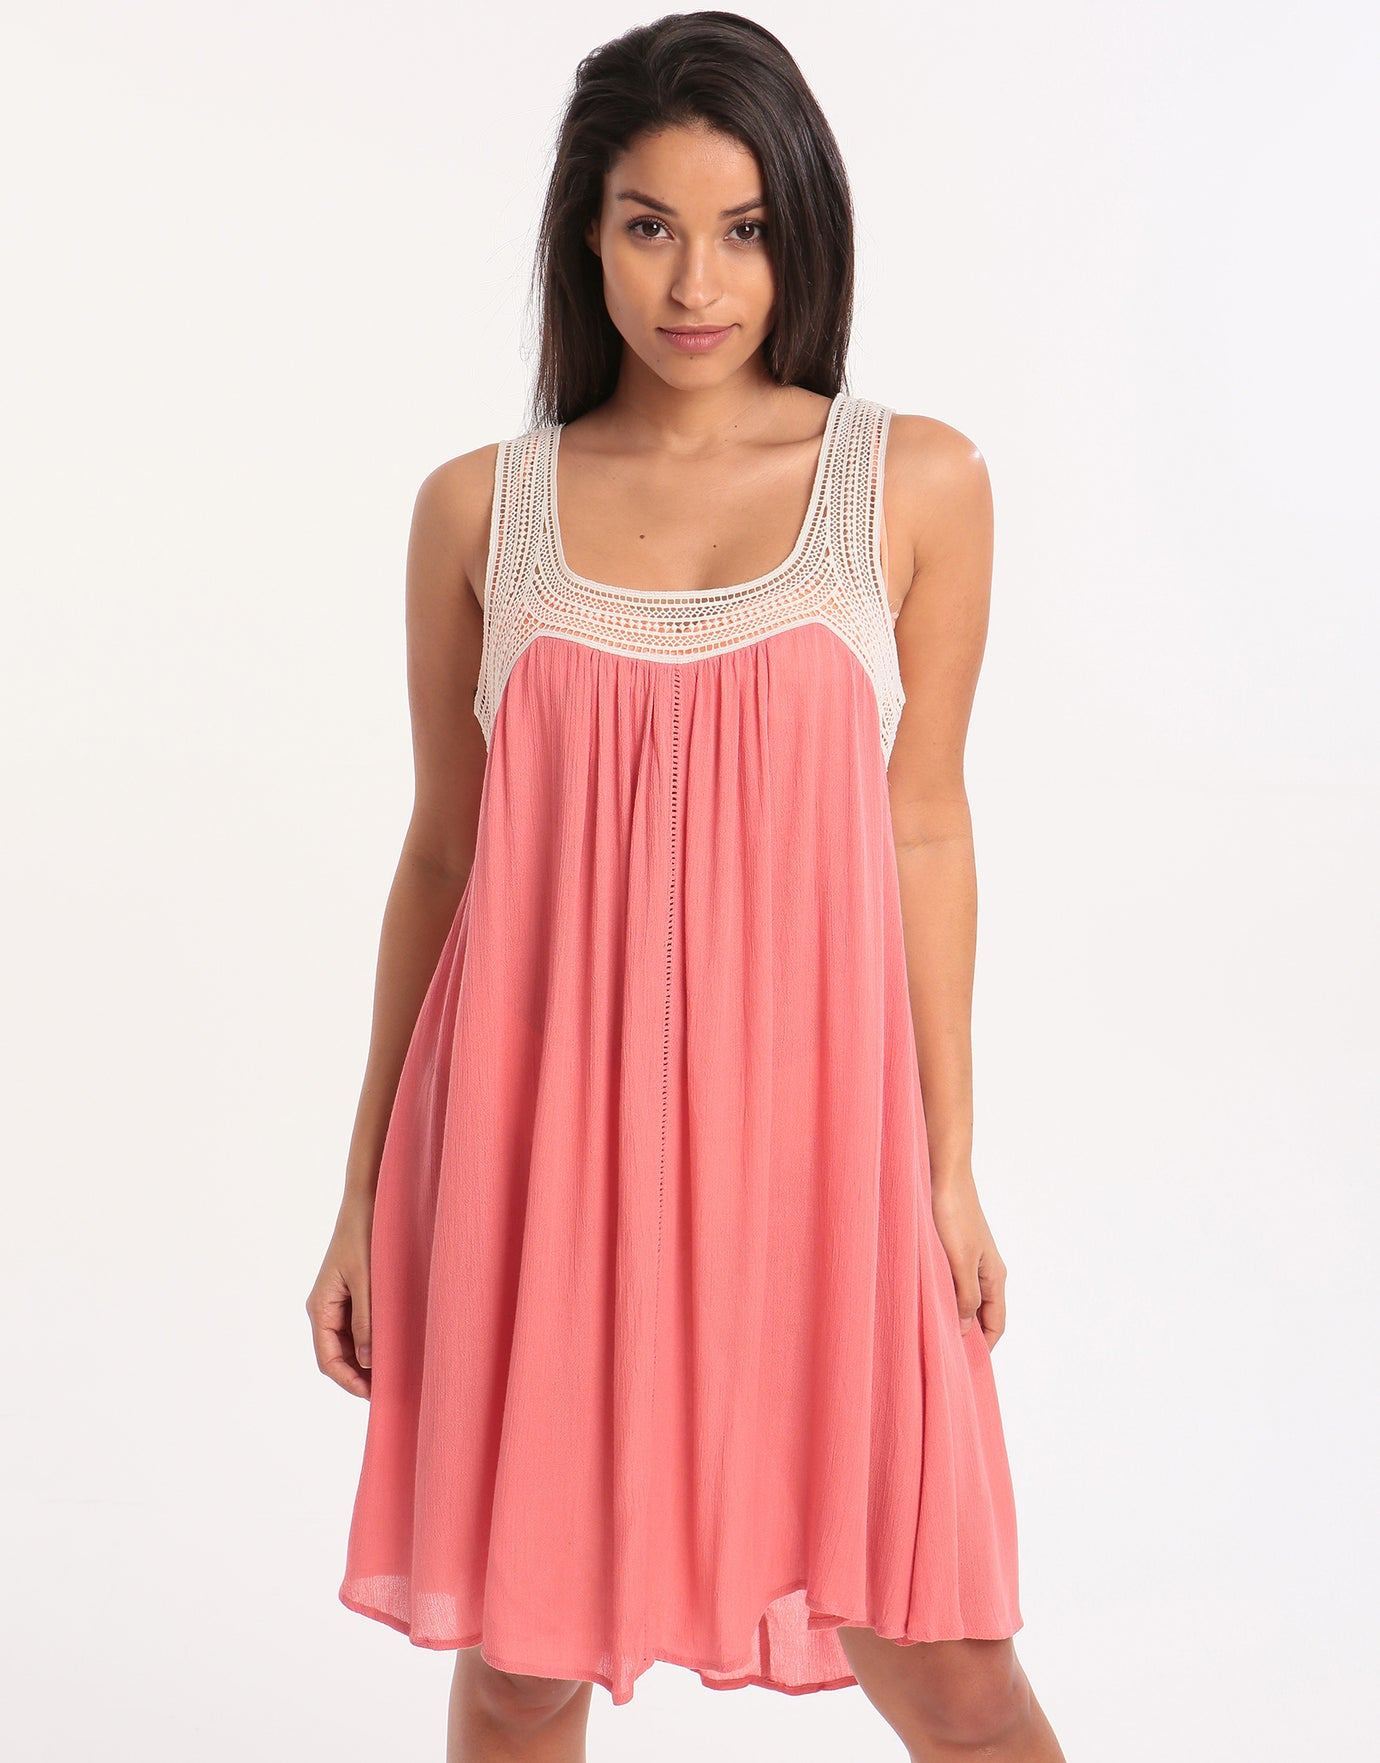 Watercult Dress - Shell Pink